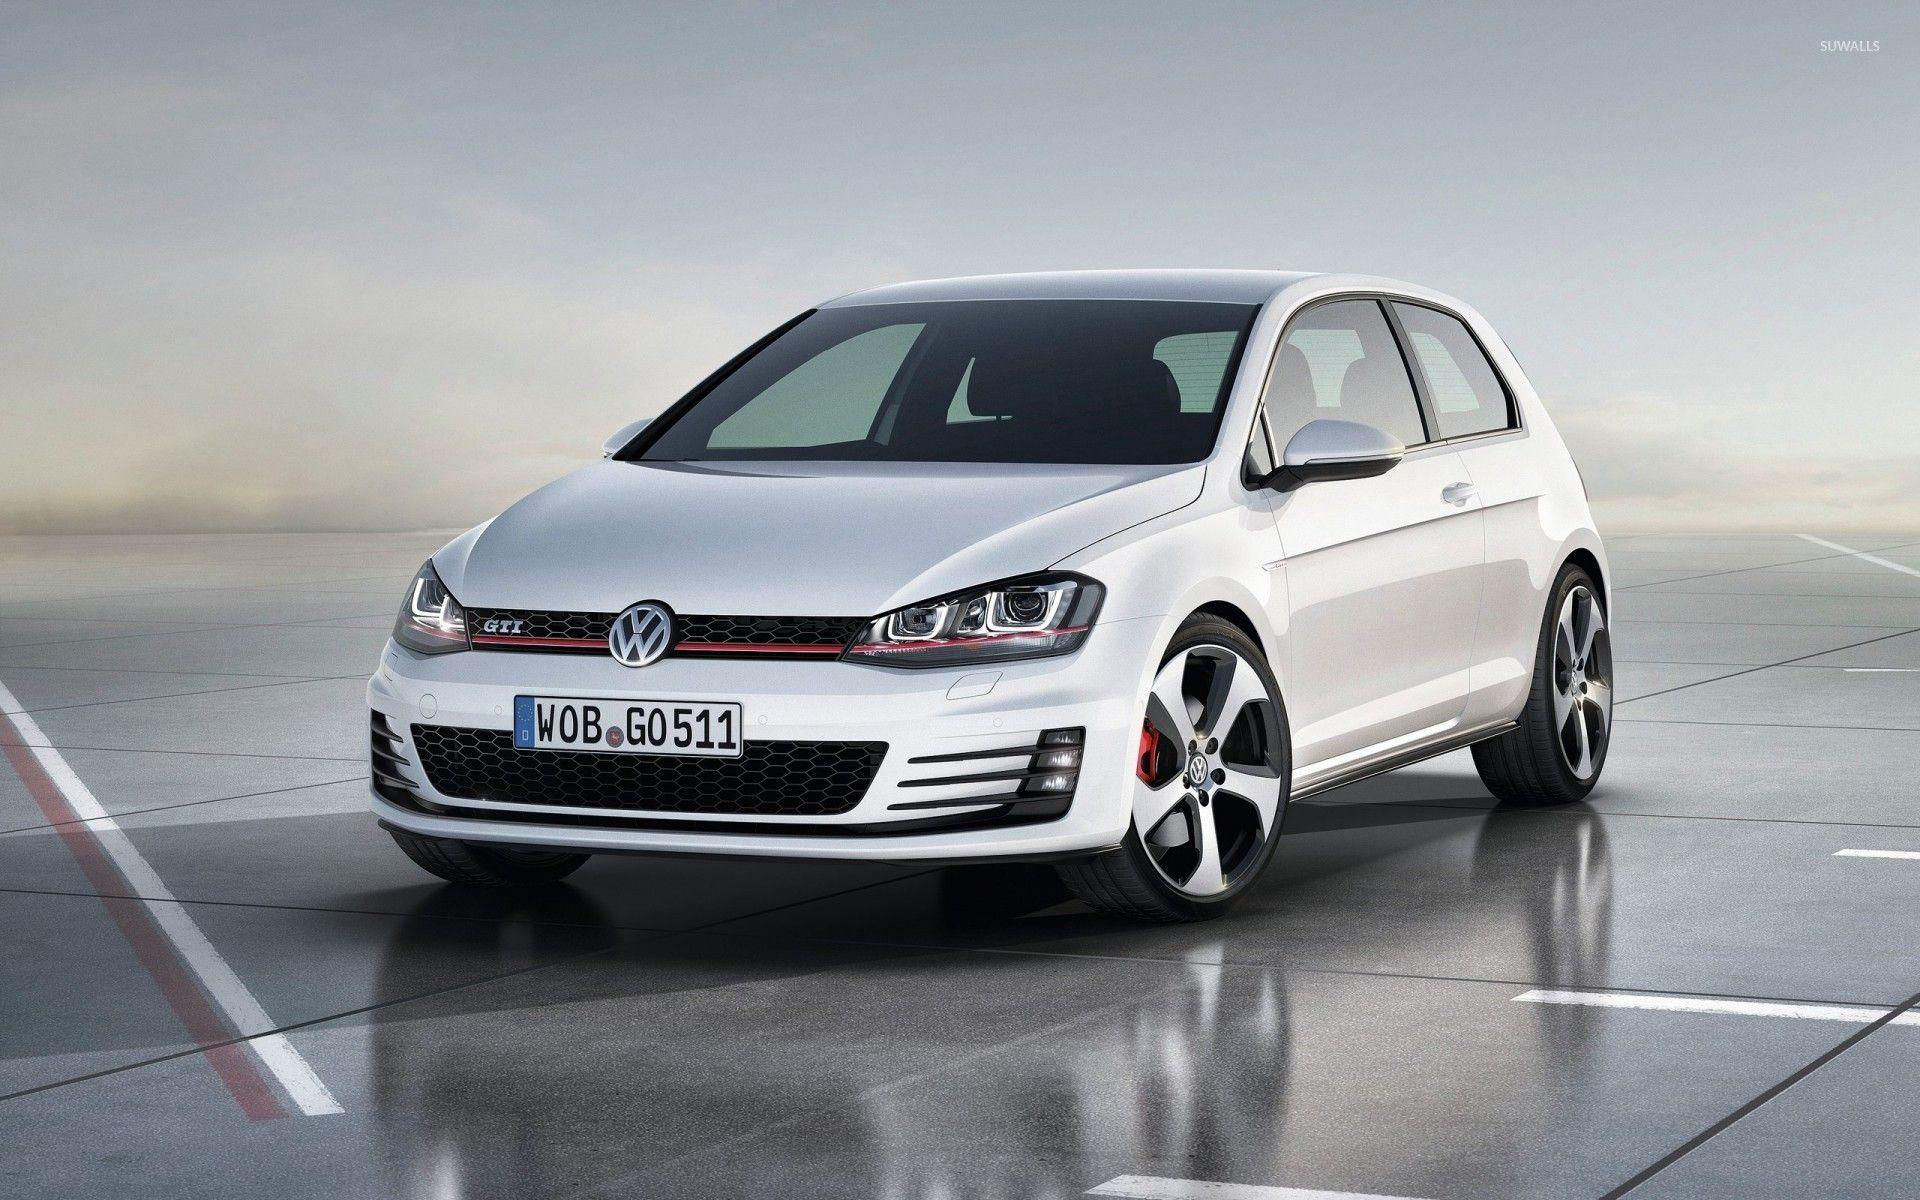 Volkswagen Golf Mk7 [2] wallpaper - Car wallpapers - #46327